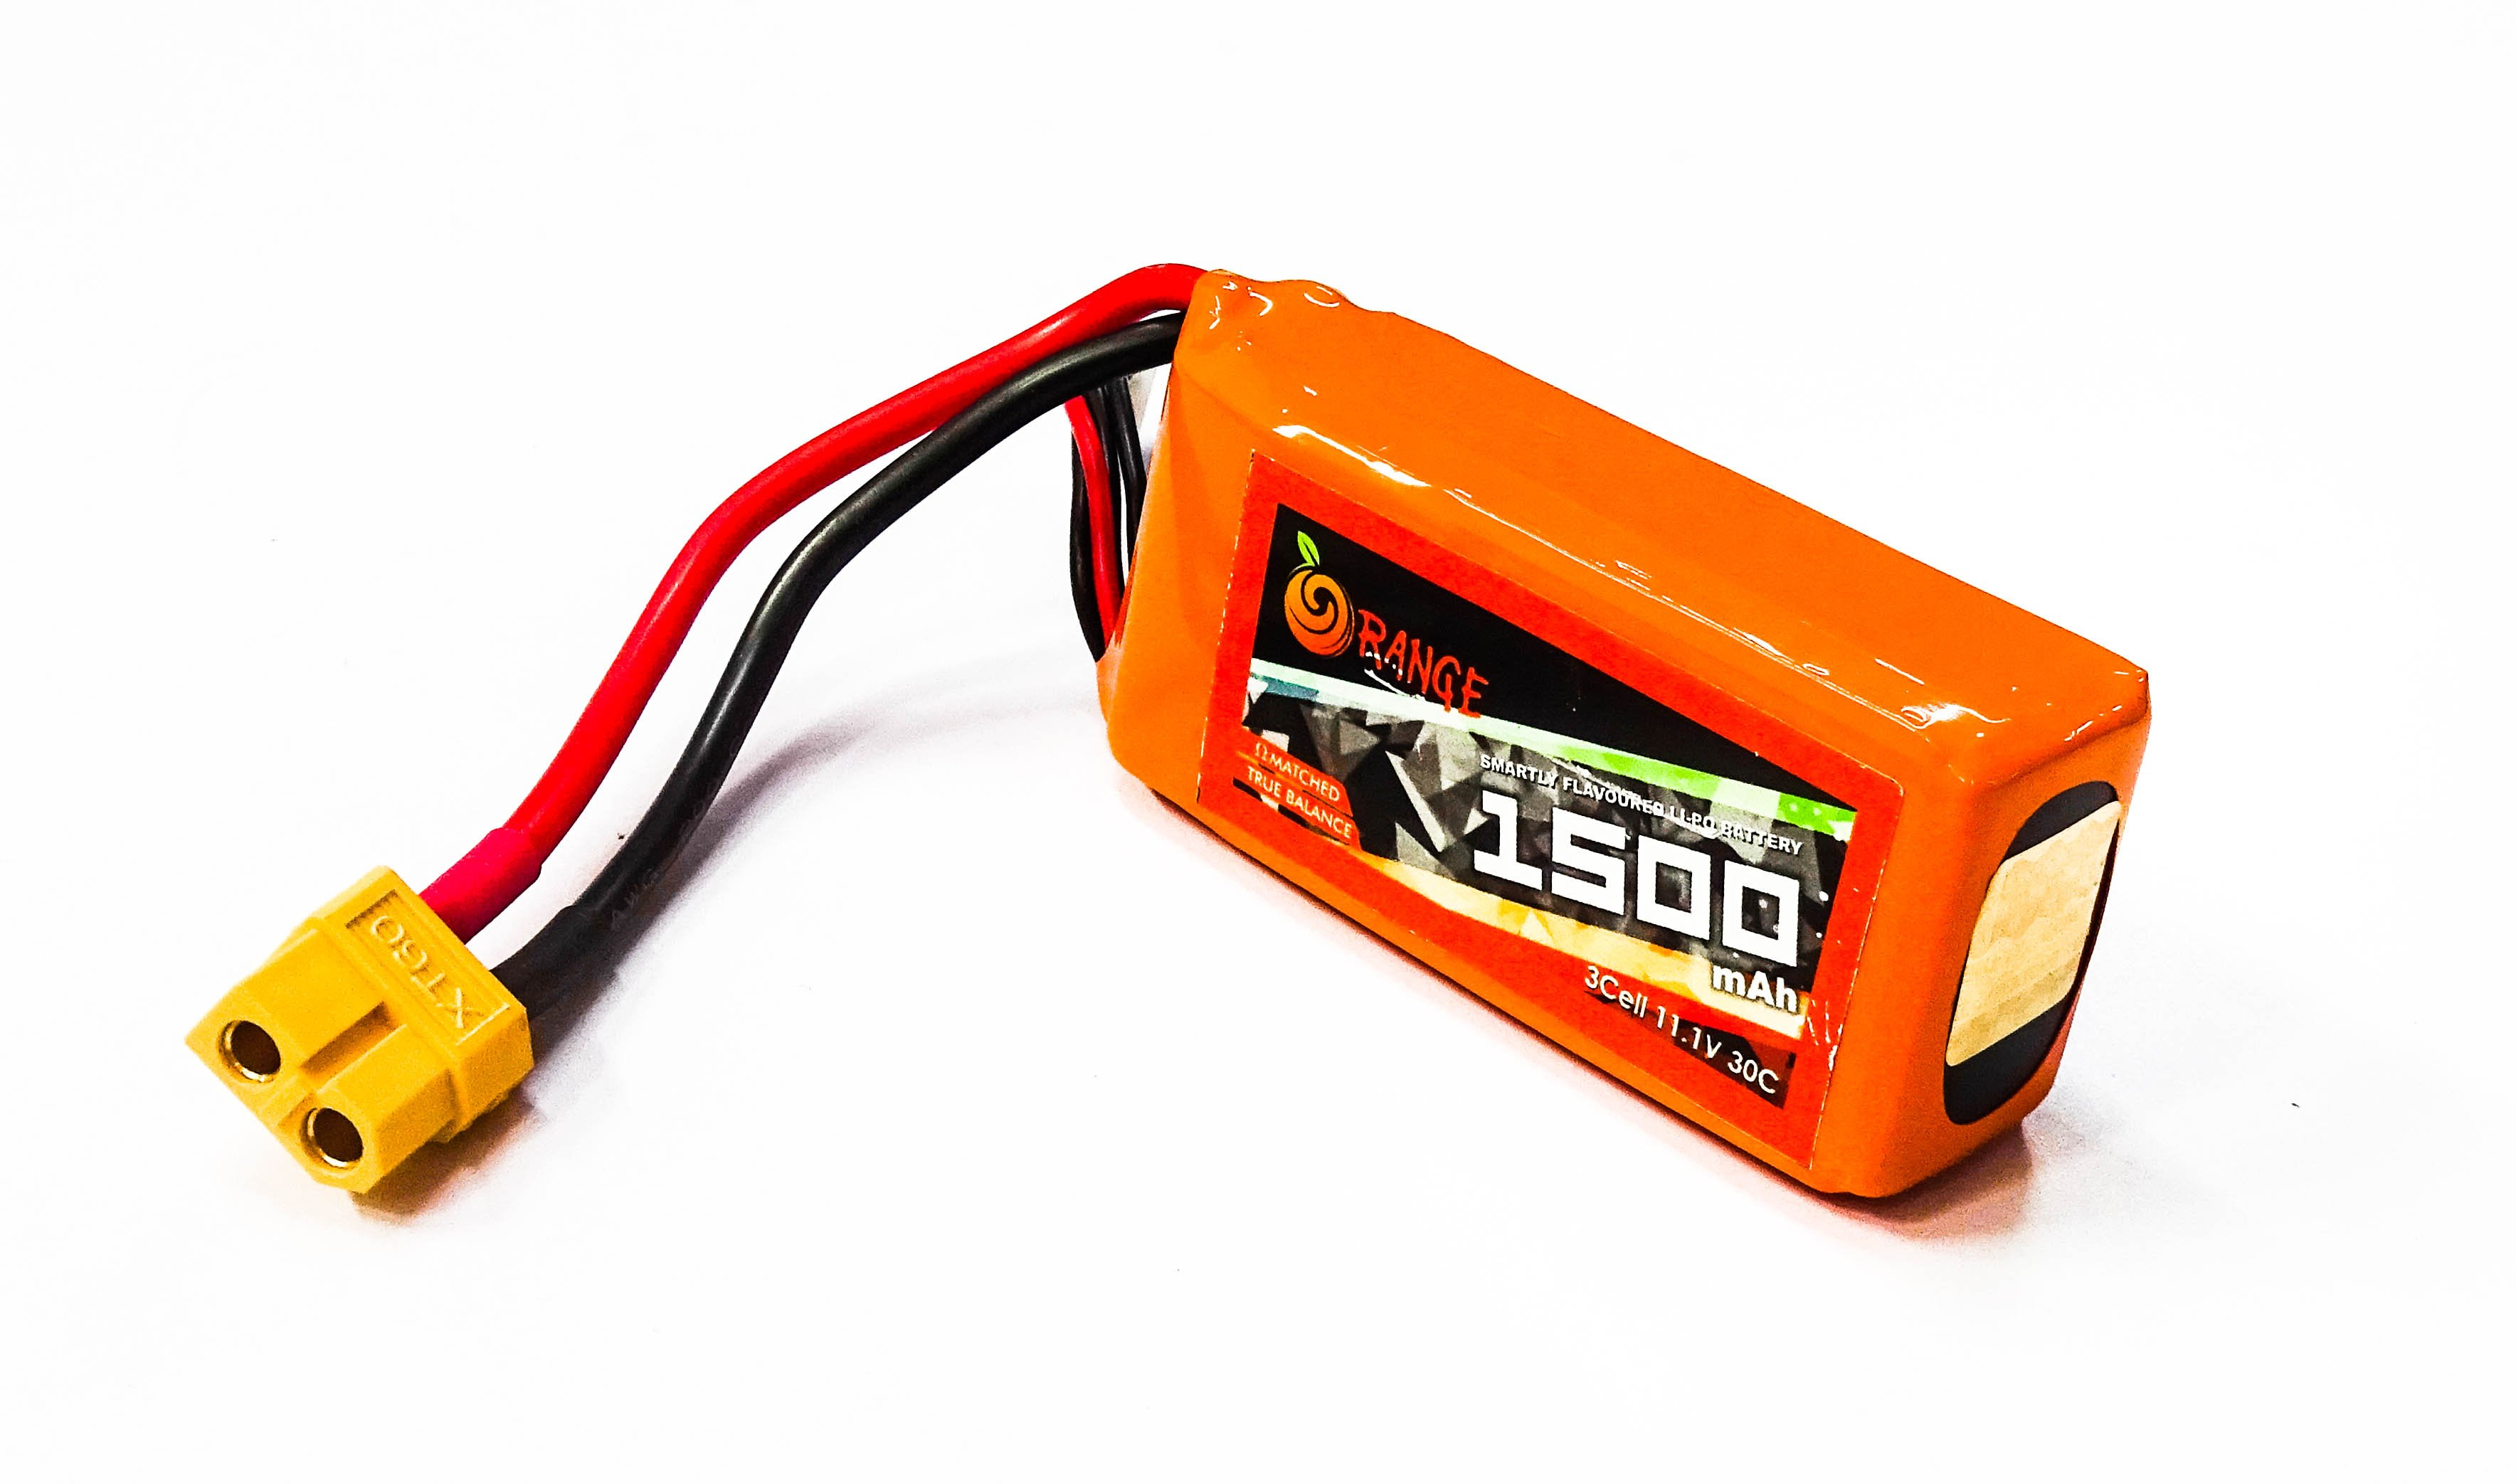 ORANGE 1500mAh 3S 30C (11.1 v) Lithium Polymer Battery Pack (LiPo)ORANGE 1500mAh 3S 30C (11.1 v) Lithium Polymer Battery Pack (LiPo)